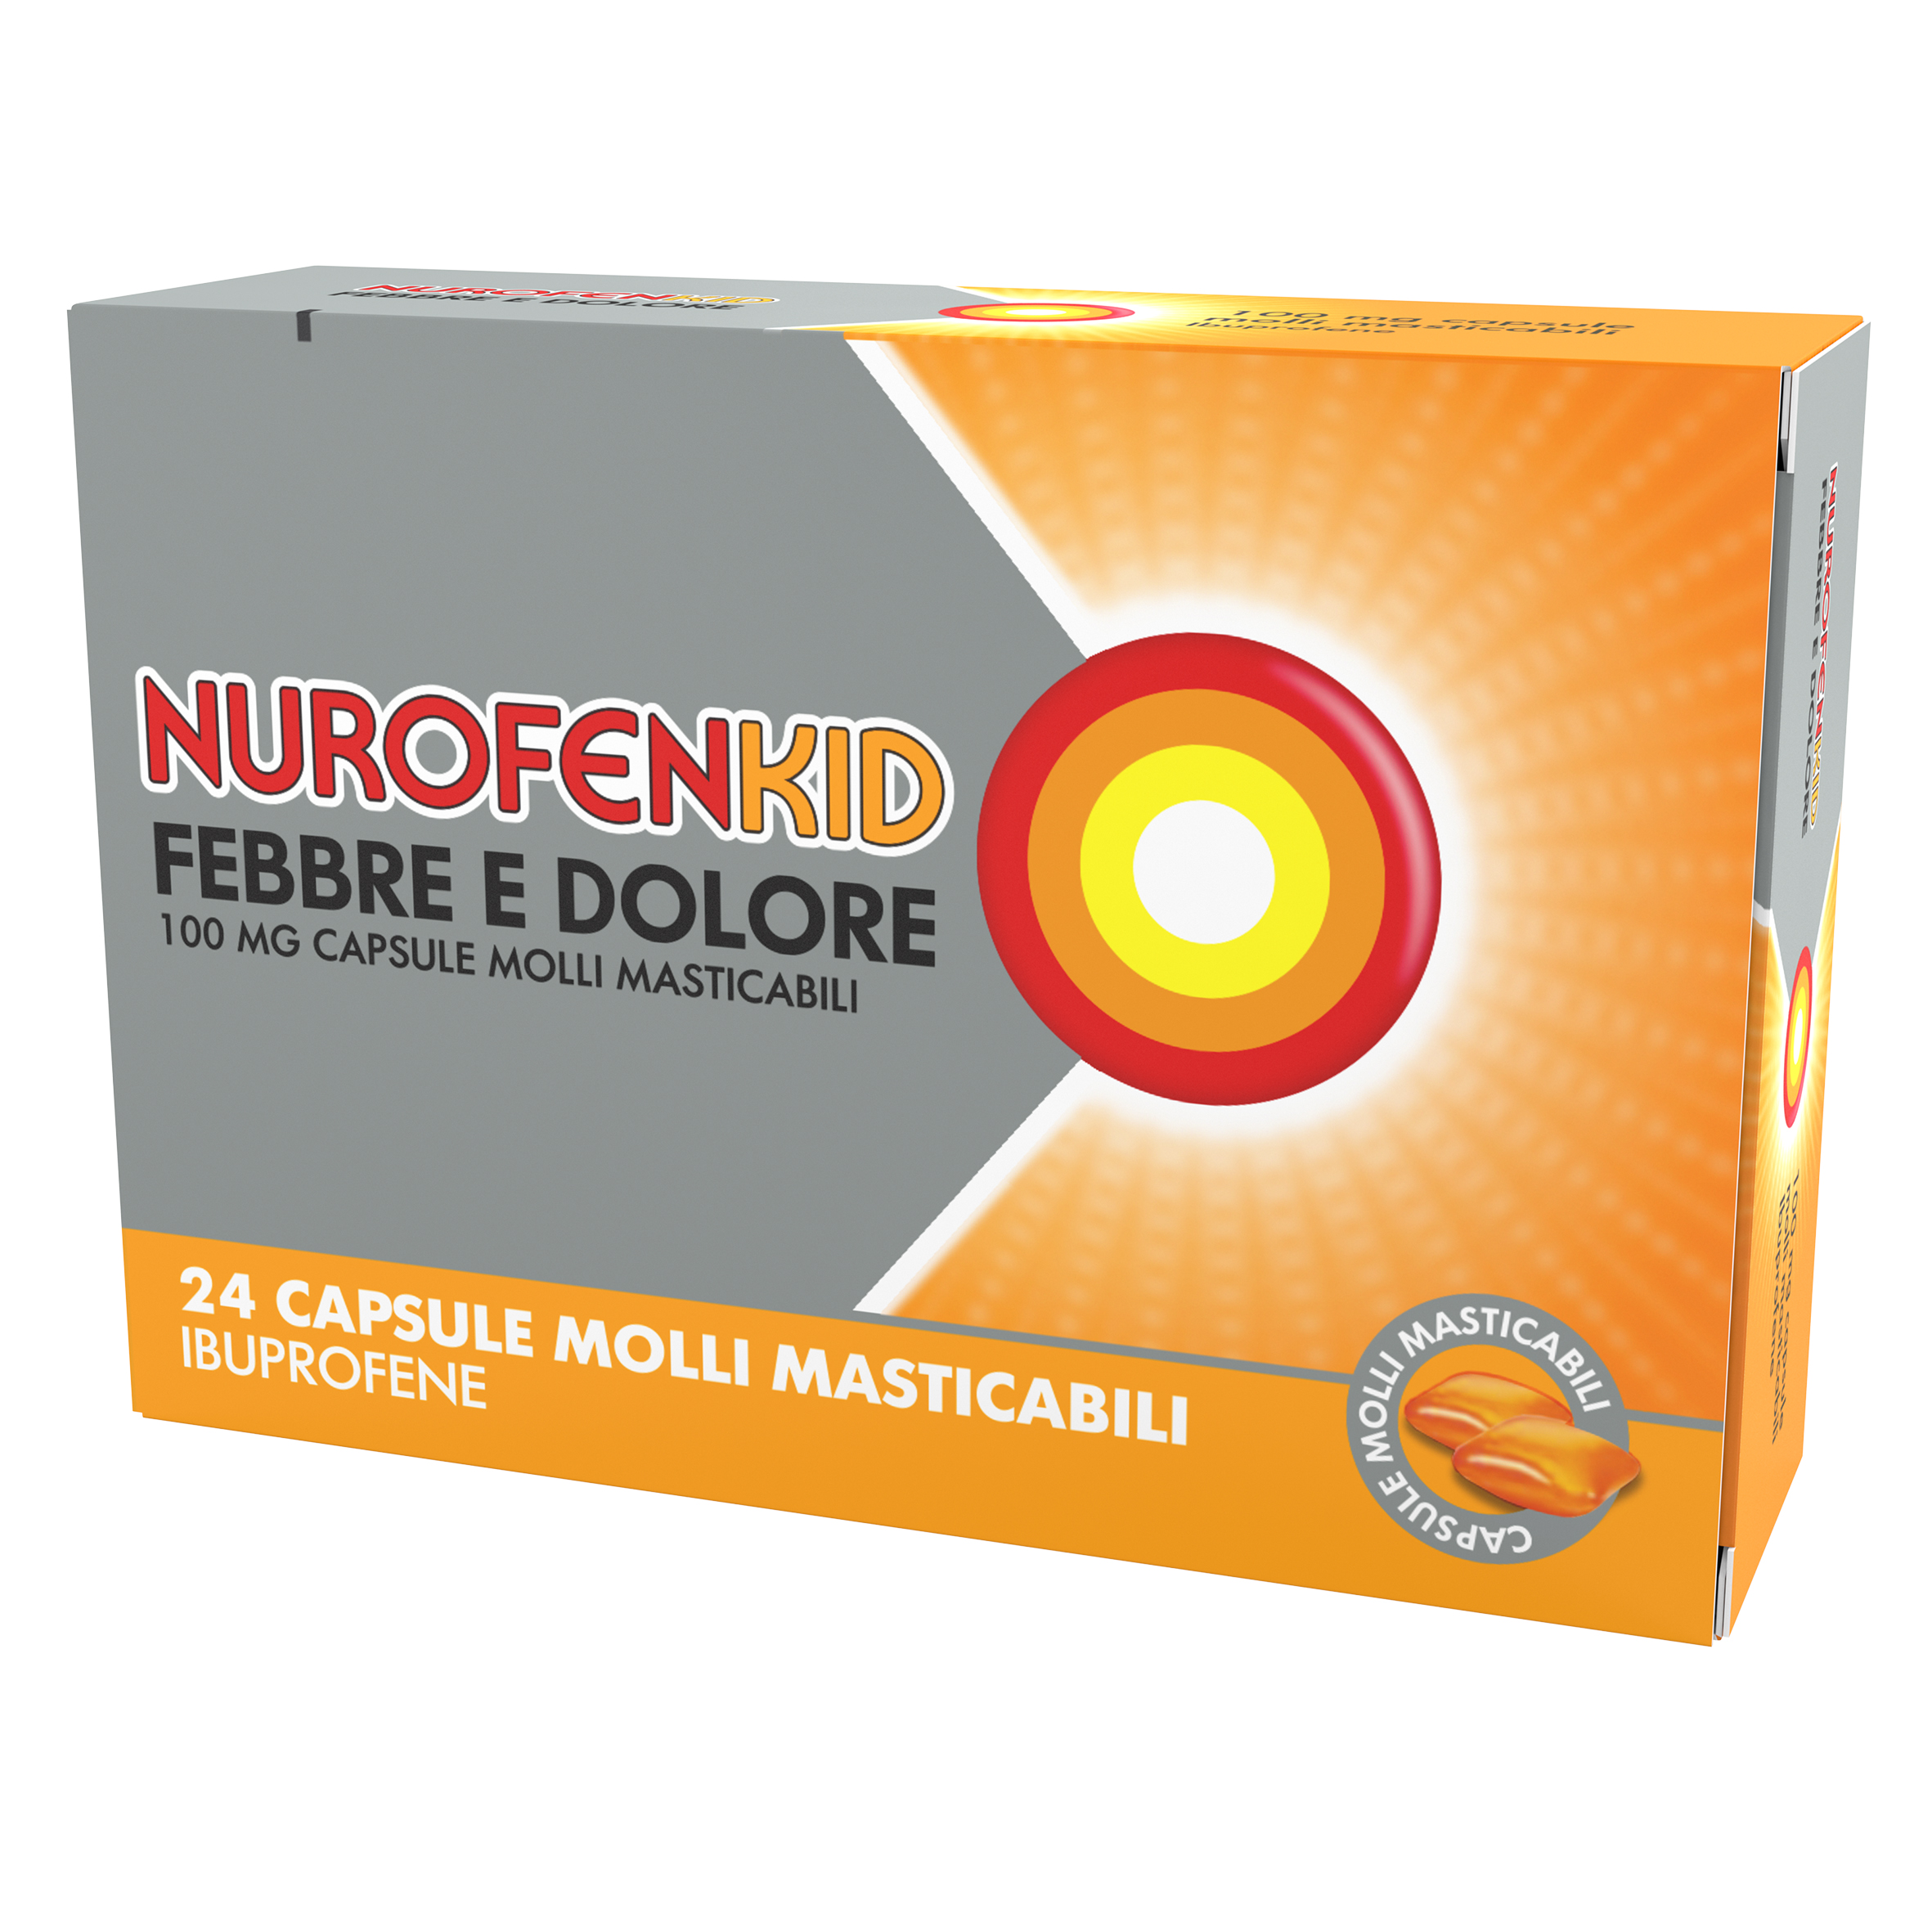 NUROFENKID FEB DOL*24CPS 100MG - Farmaciaempatica.it